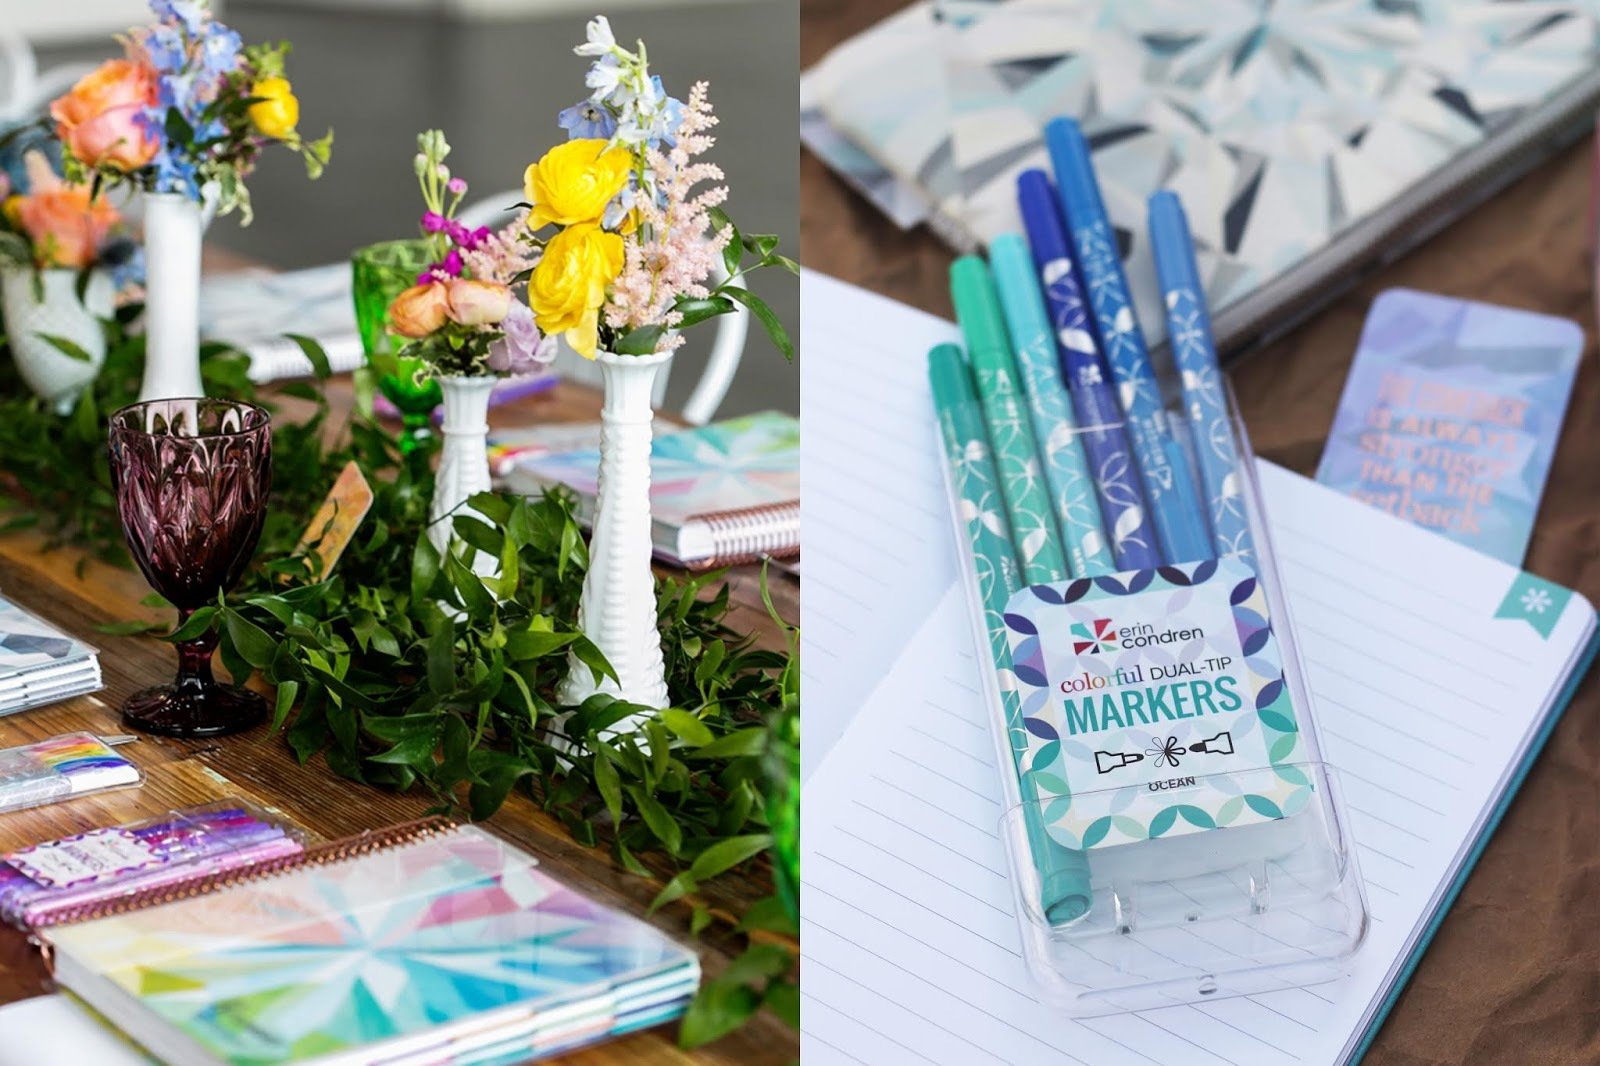 Erin Condren Kaleidoscope LifePlanner Launch, Chicago Blogger Events, Erin Condren Planner, Brunch, Hand Lettering Workshop